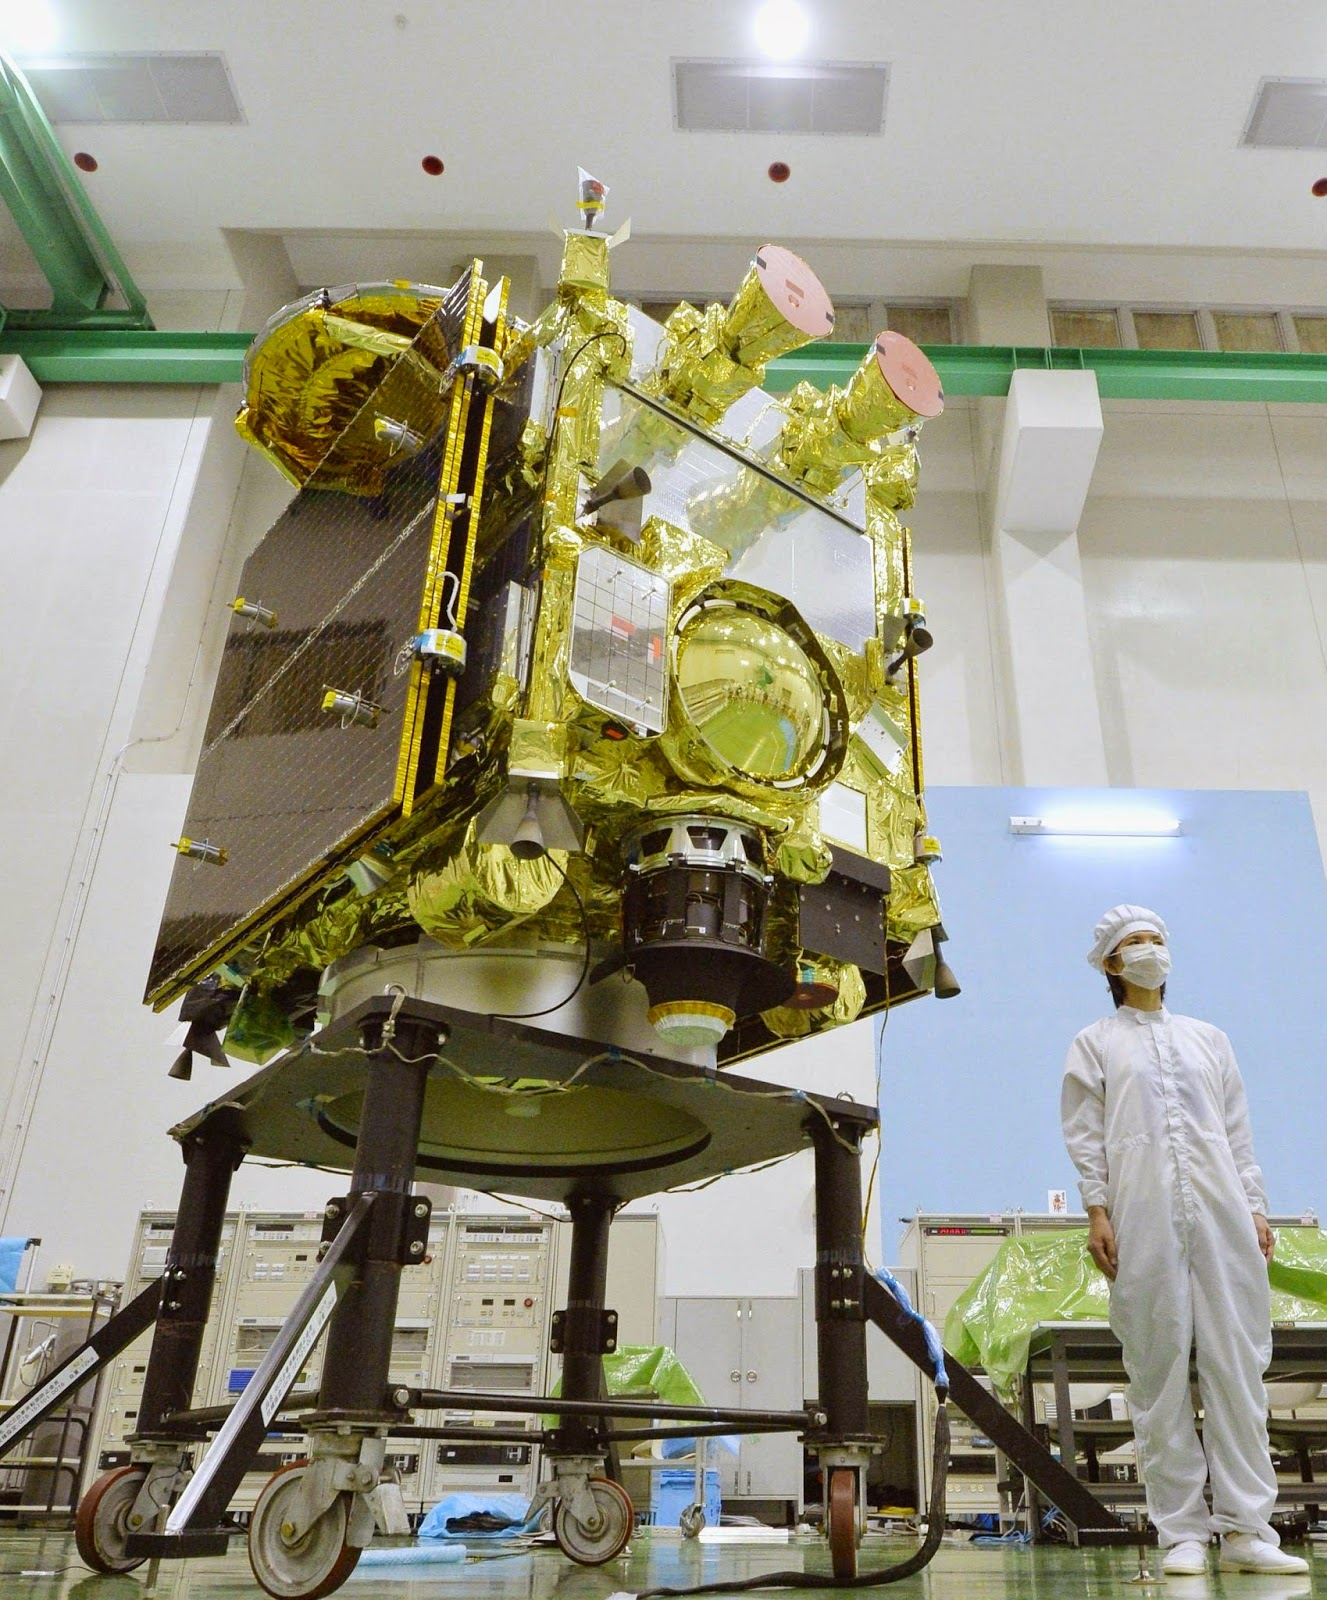 Astronomy and Space News - Astro Watch: Japan Unveils Its ...